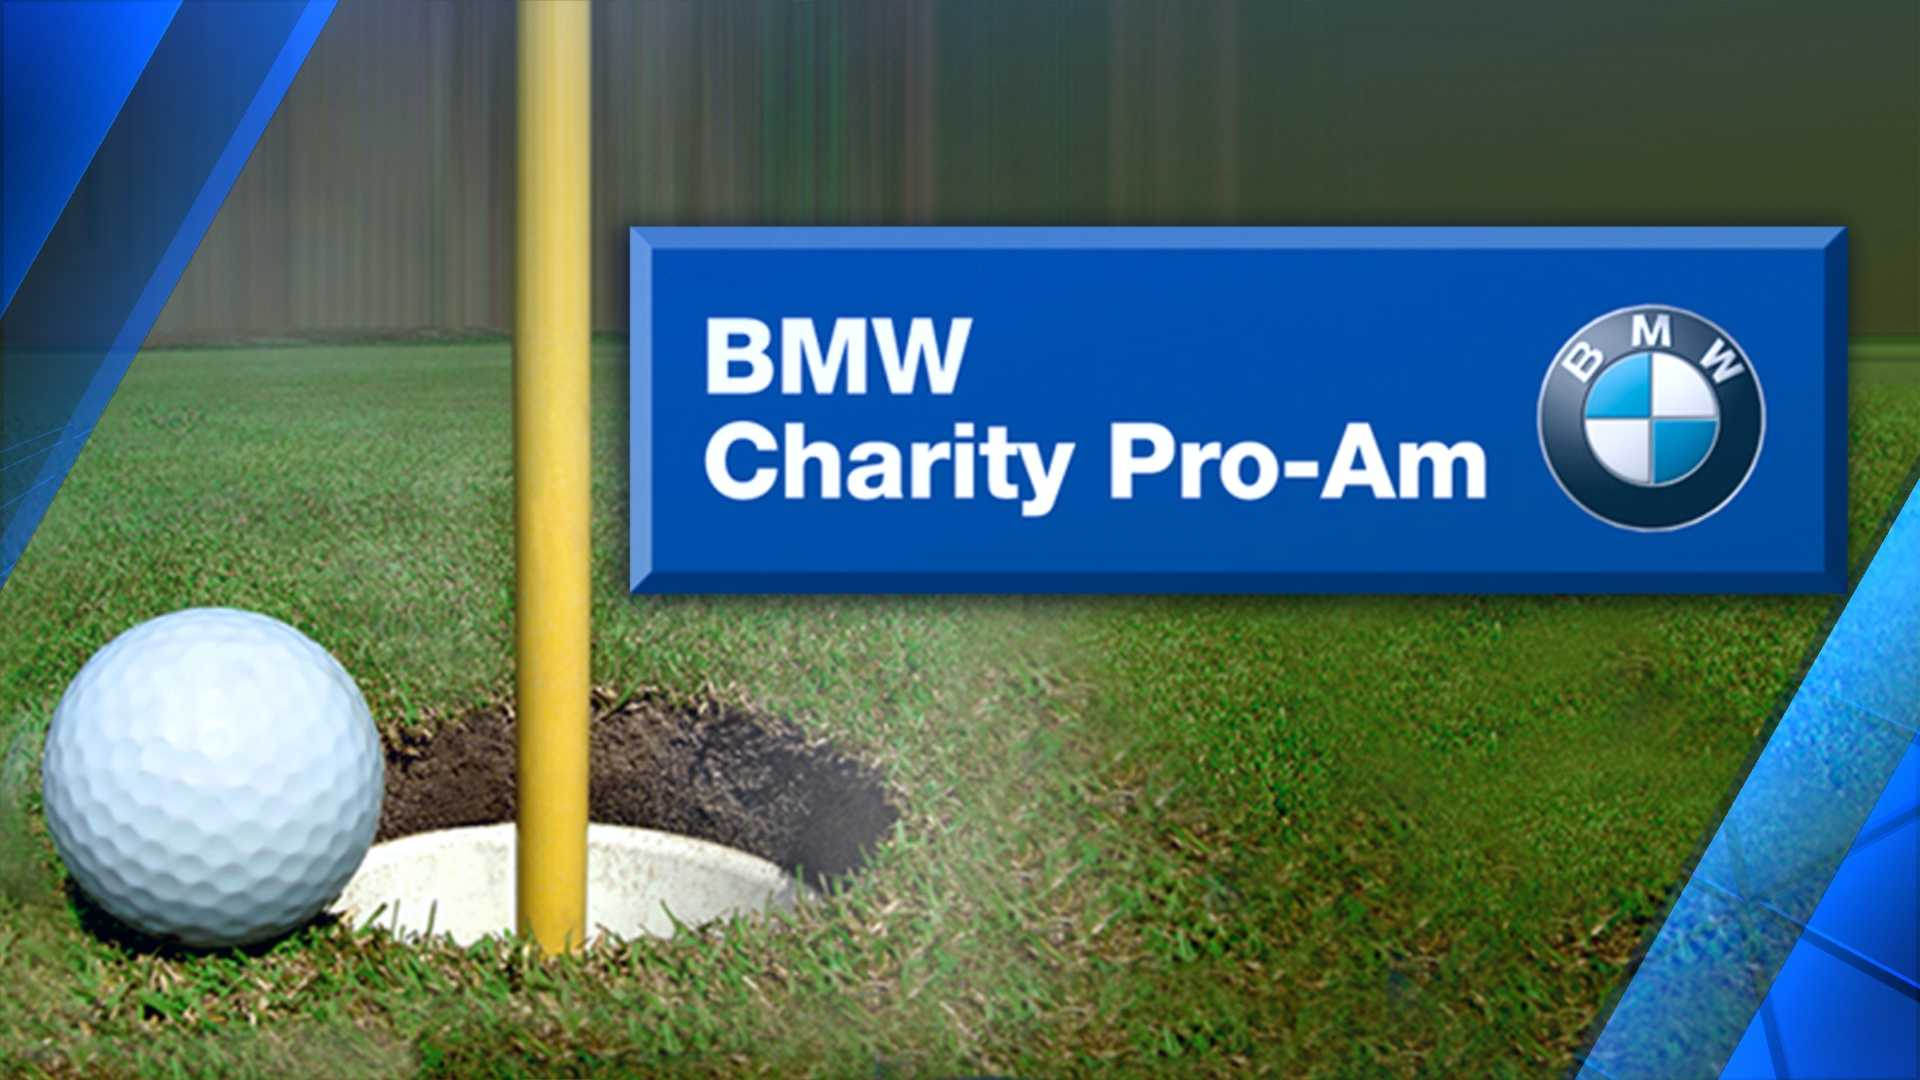 BMW Charity Pro-Am Golf Tournament